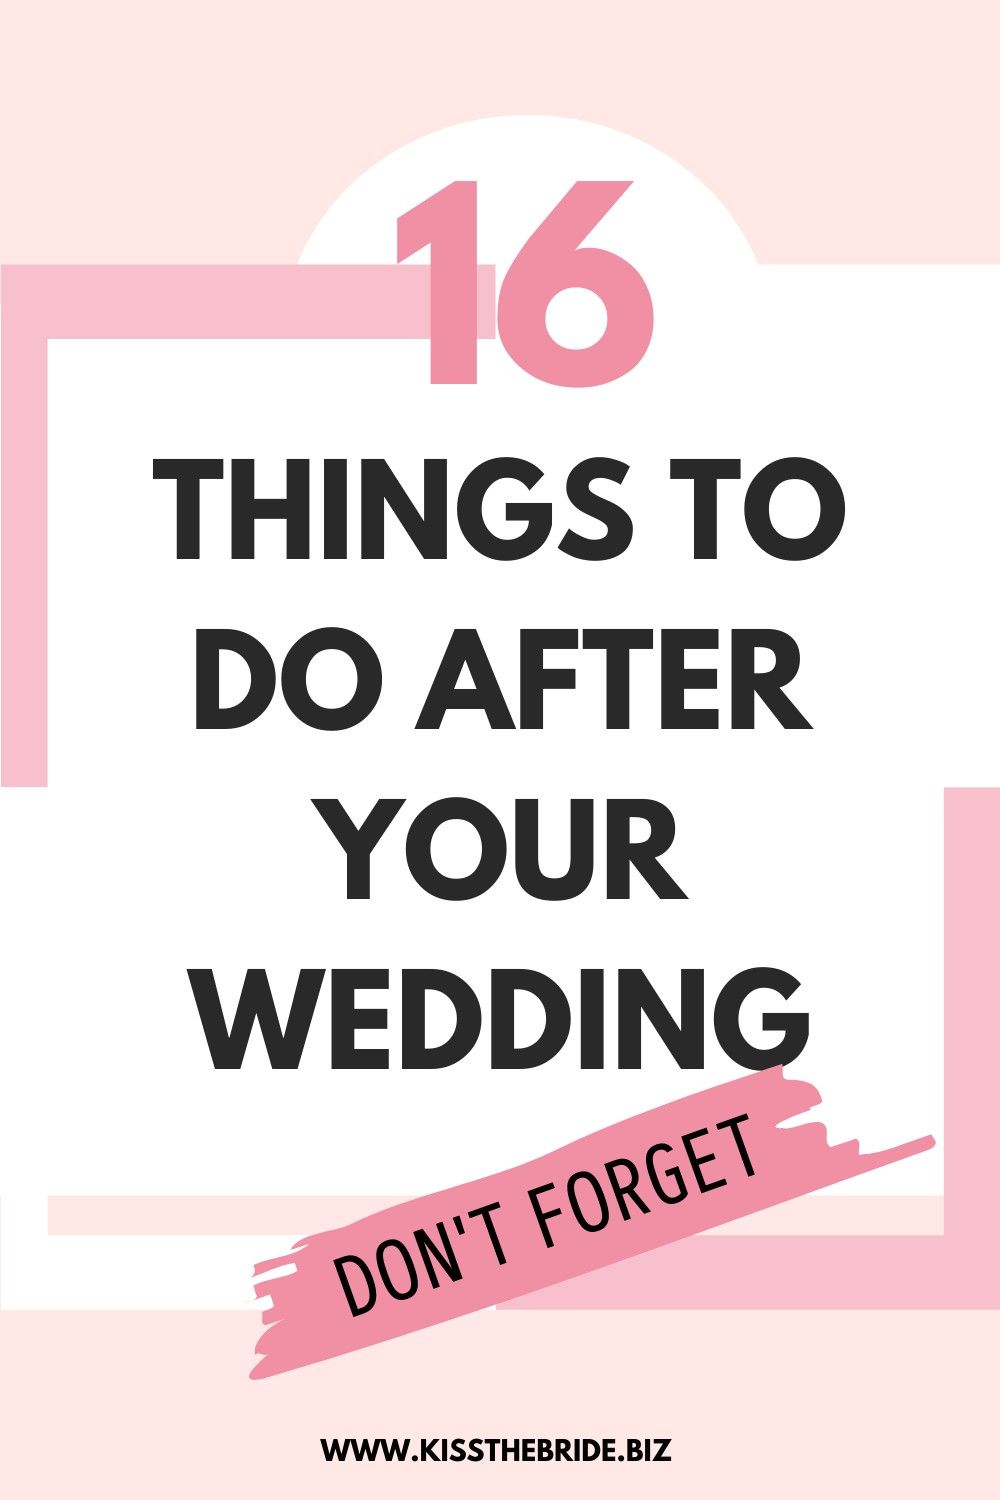 16 Things to do after the wedding ~ KISS THE BRIDE MAGAZINE